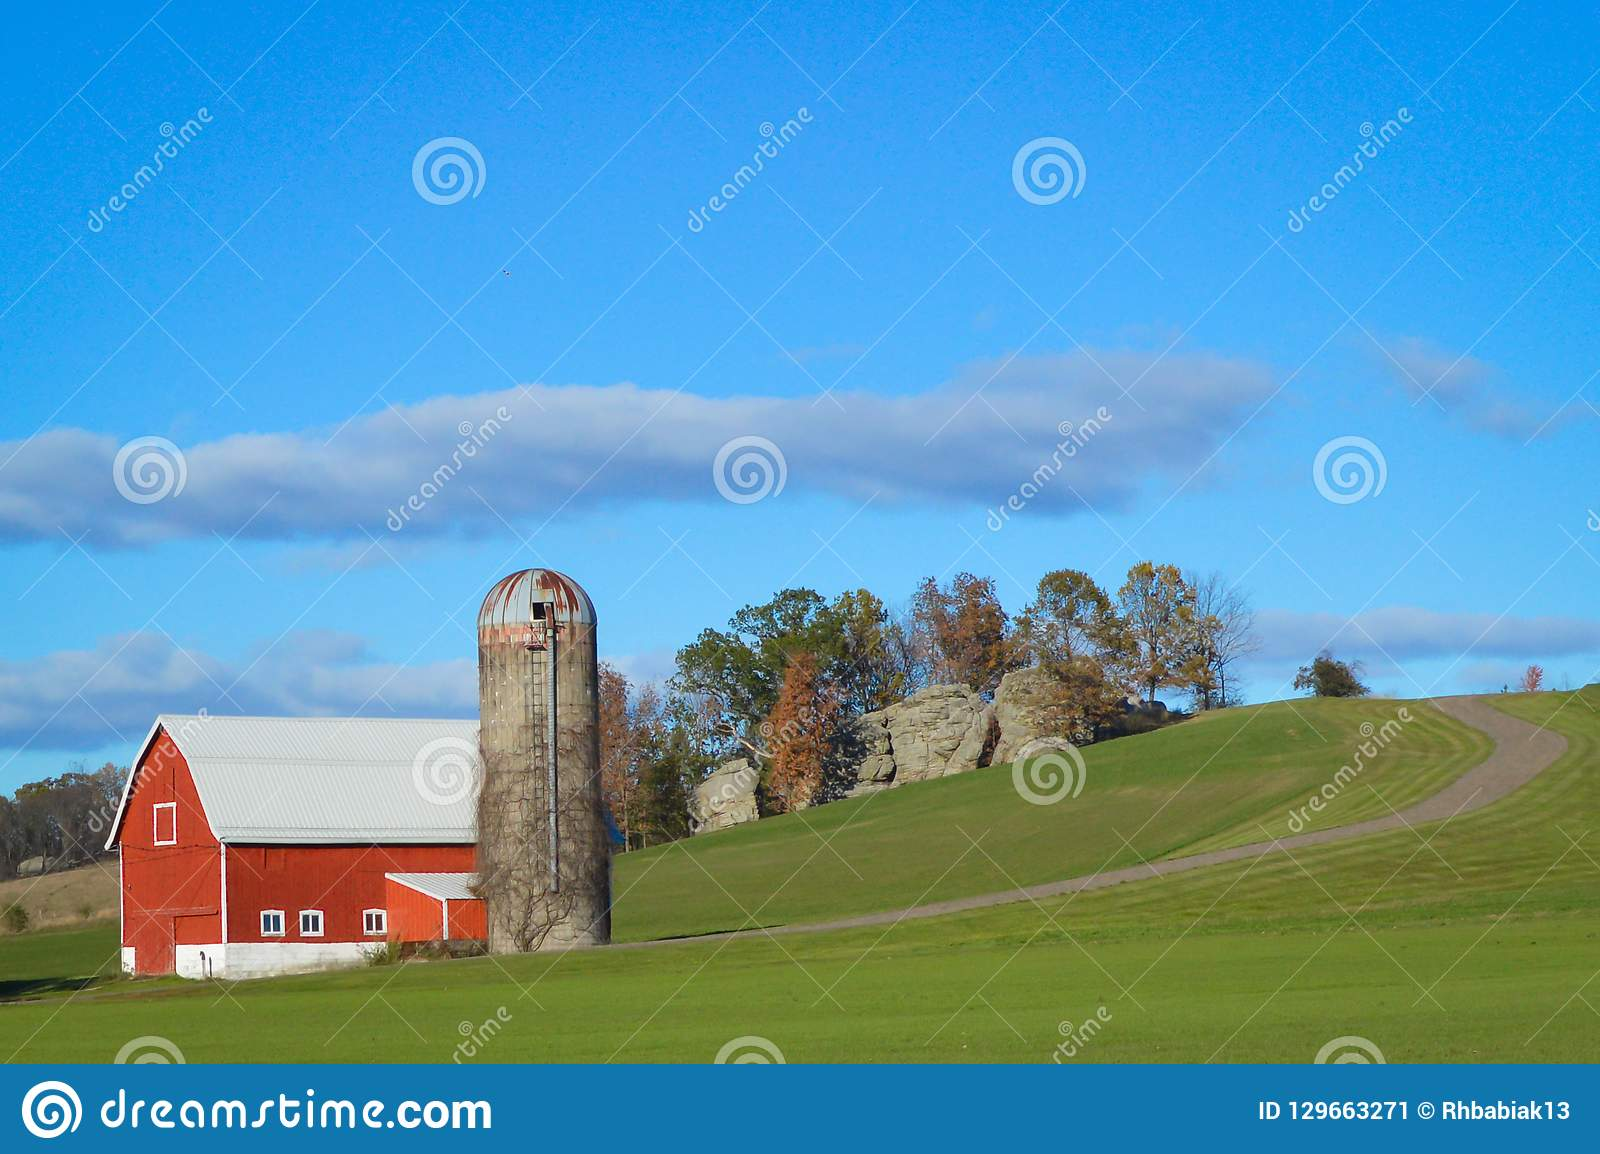 Red Barn with Silo in Wisconsin Countryside